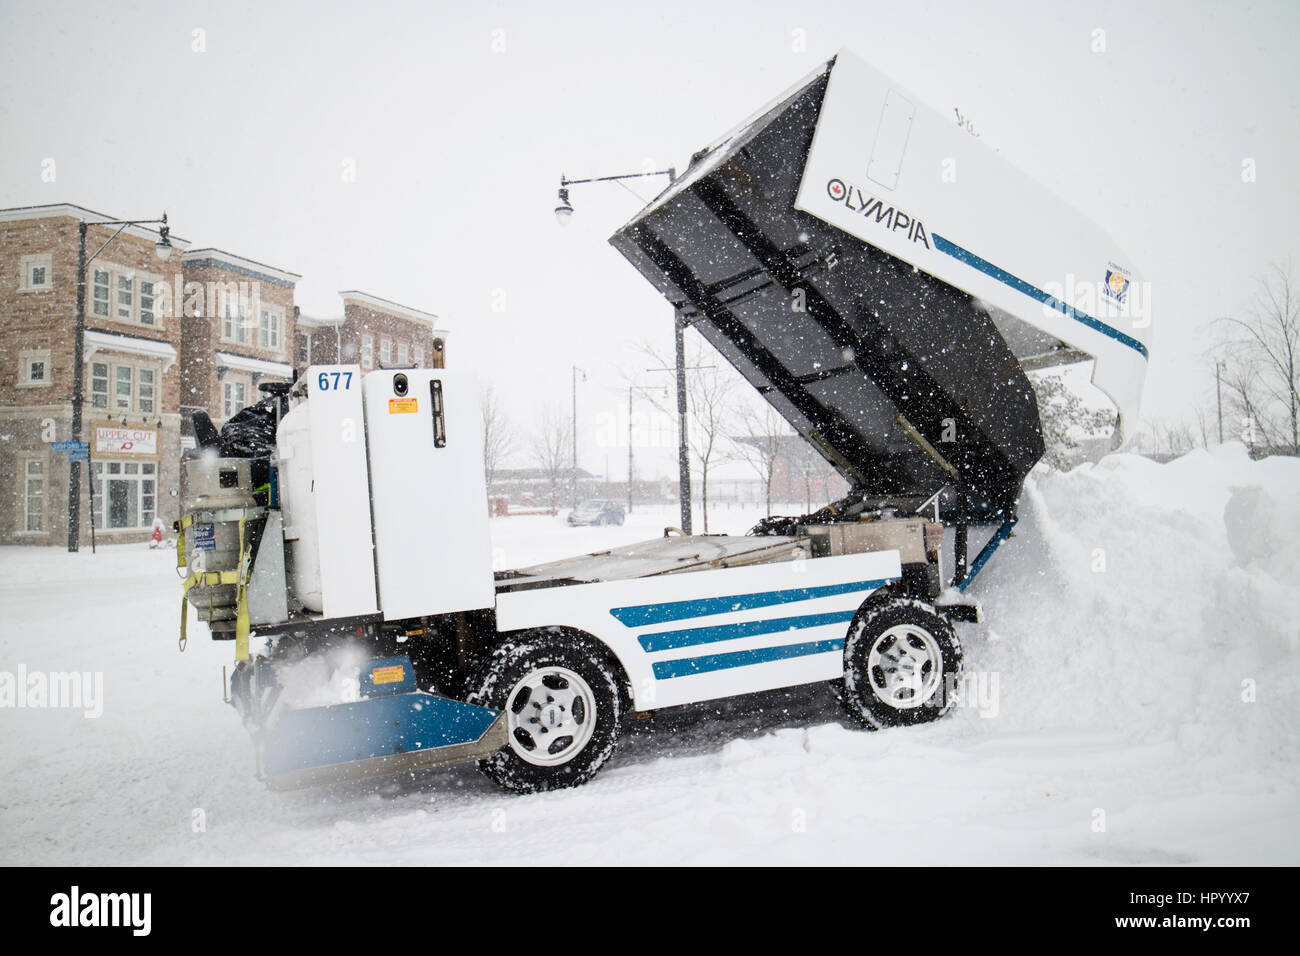 Zamboni vehicle cleaning snow on outdoor rink and dumping snow in a pile - Stock Image